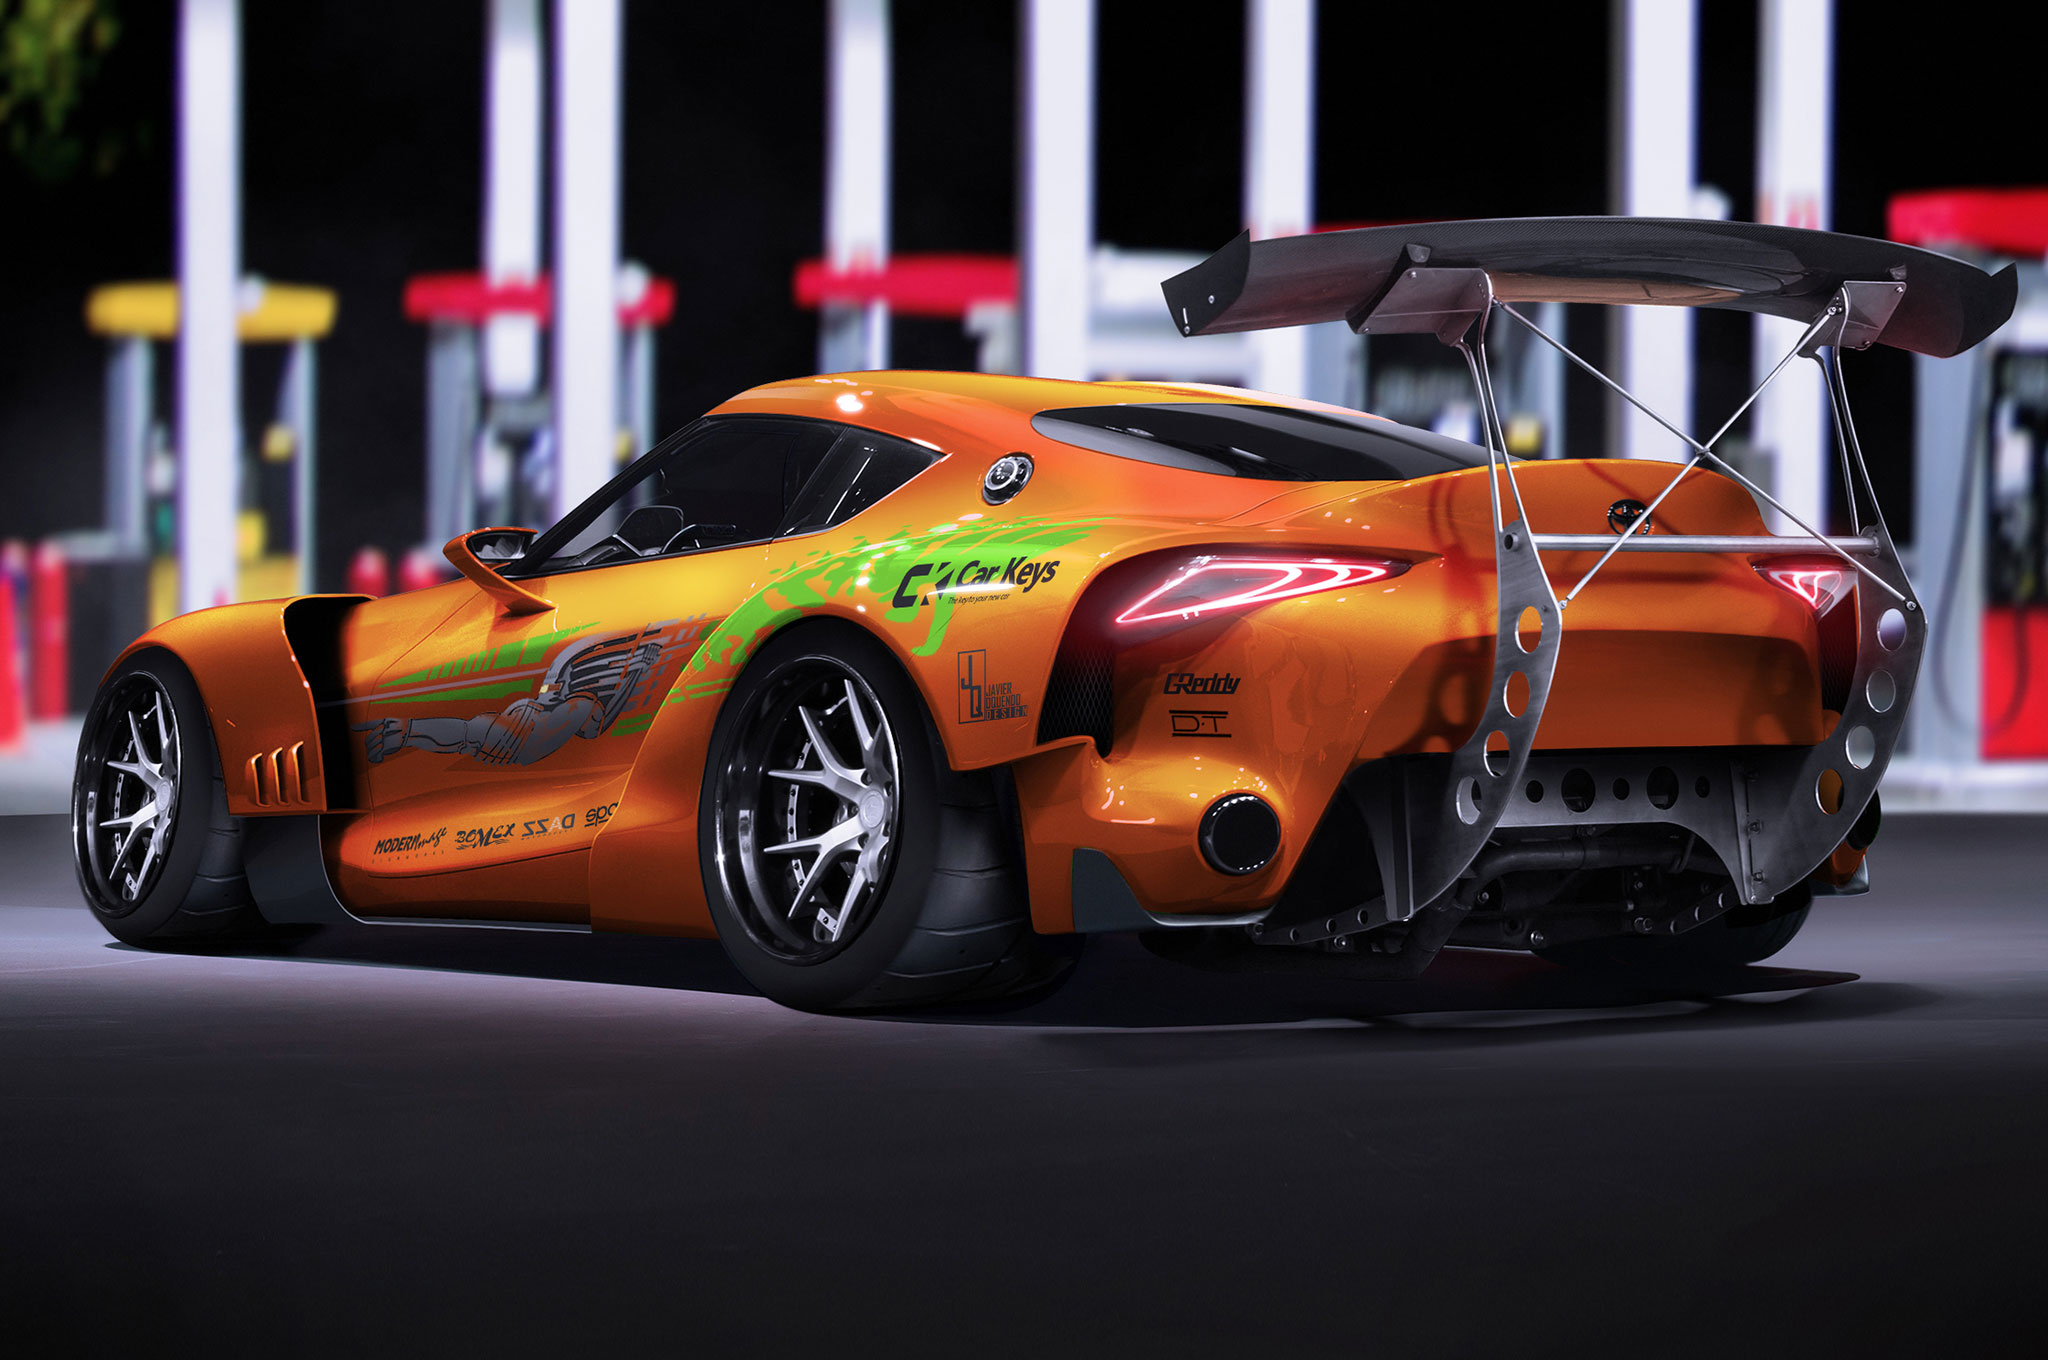 Renders Bring Cars From The Fast And The Furious Up To 2017 Spec